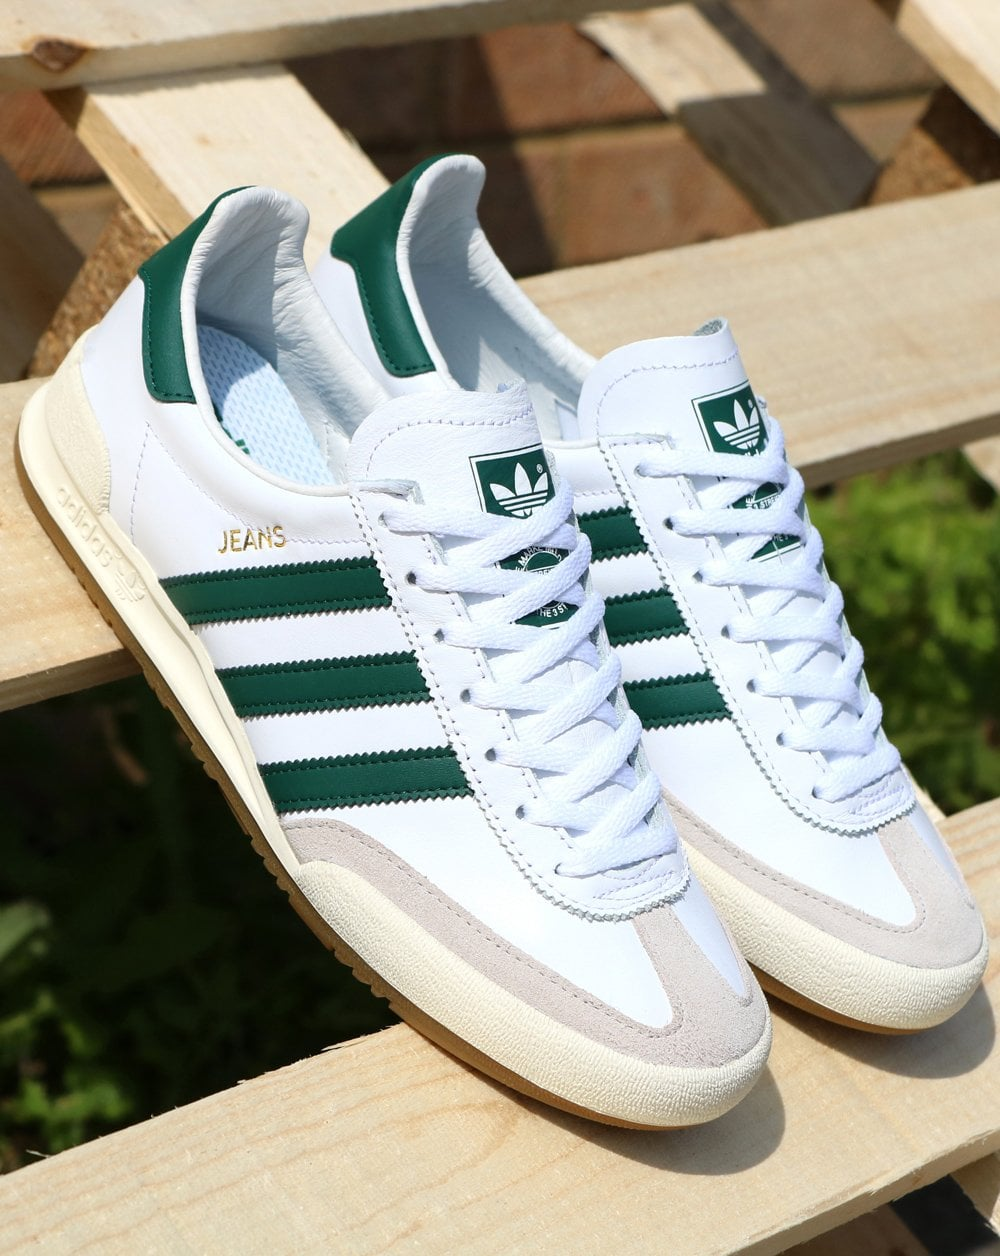 Adidas Jeans mk2 Trainers White, green